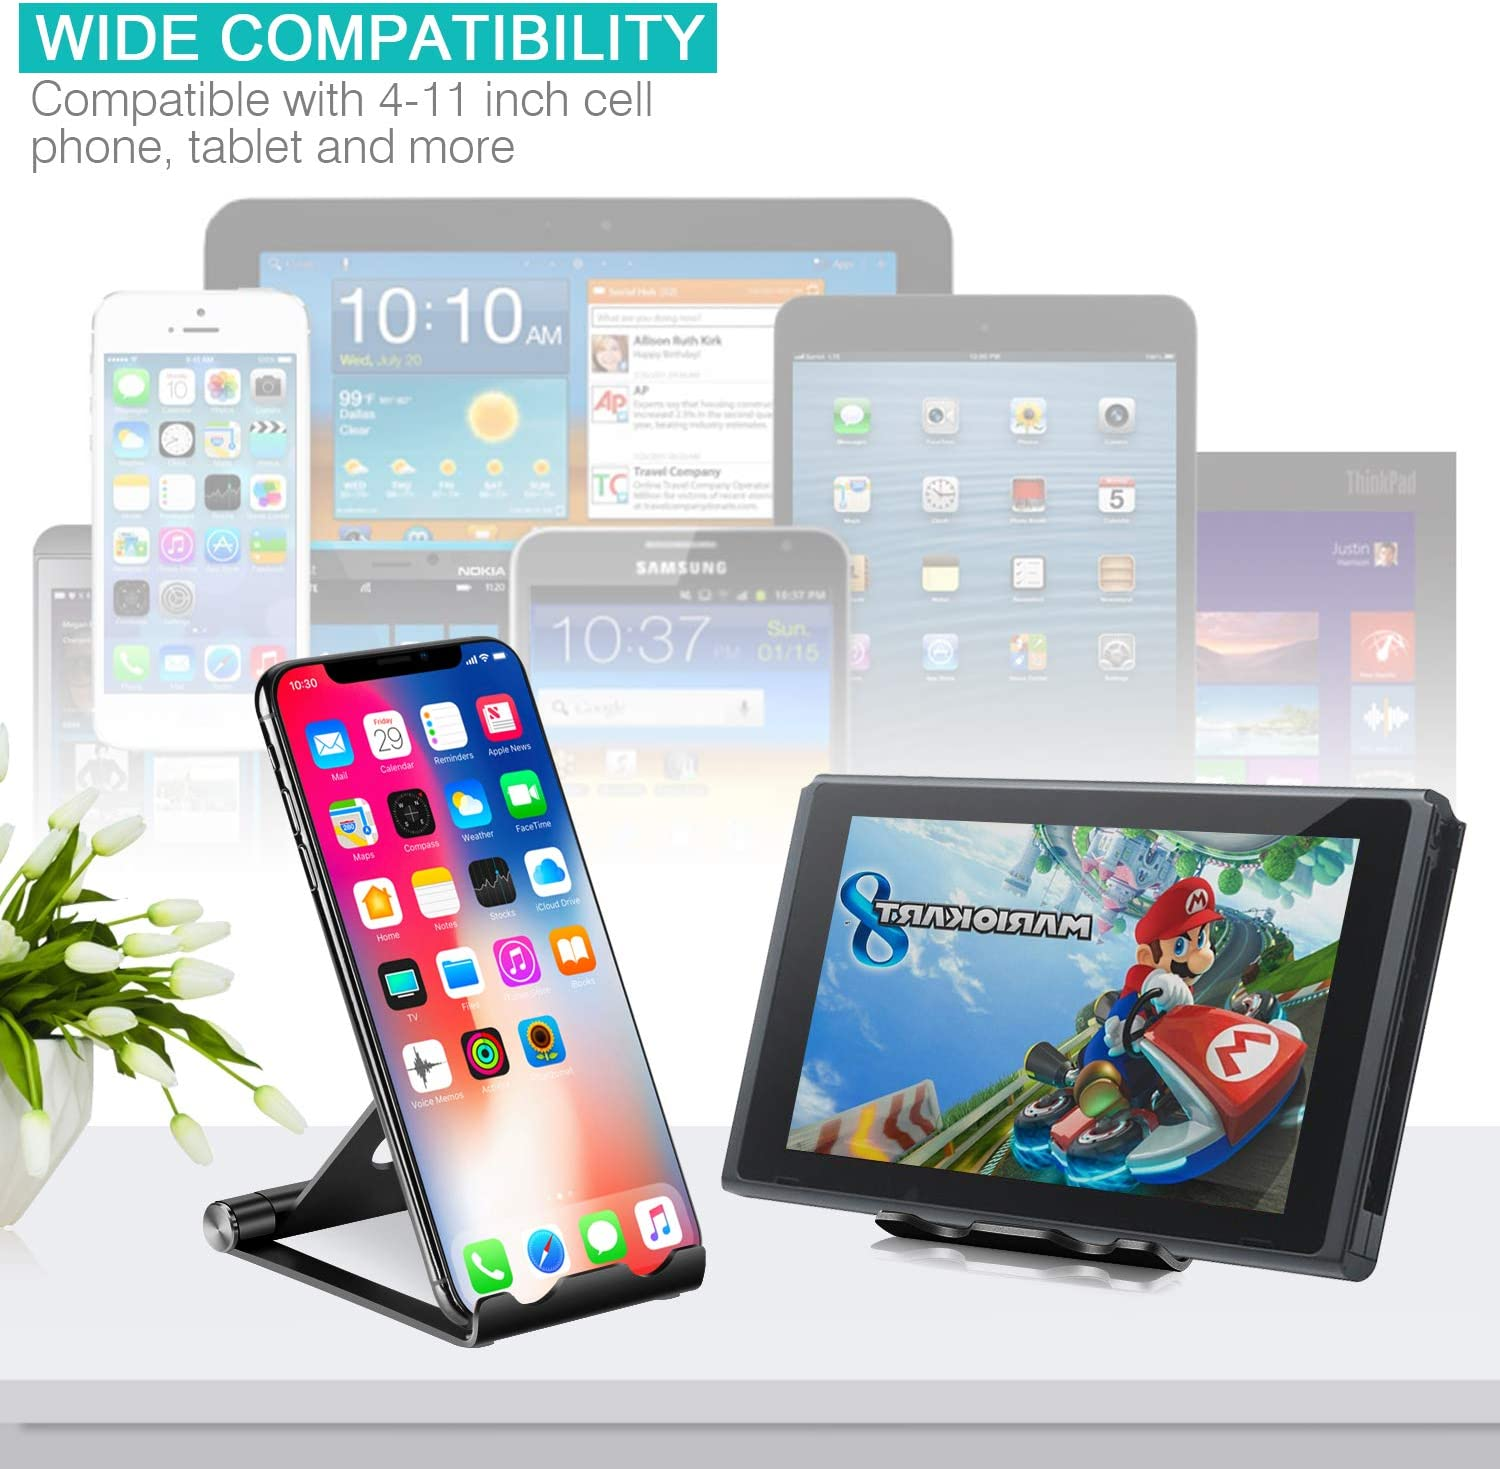 Portable Phone Stand: Full 360/° Adjustable Cell Phone Holder Cradle Dock for Phone Xs XR X 8 7 6 6S Plus Cell Phone Stand 4-11 - Black Universal Aluminium Stand for Cellphones and Tablets